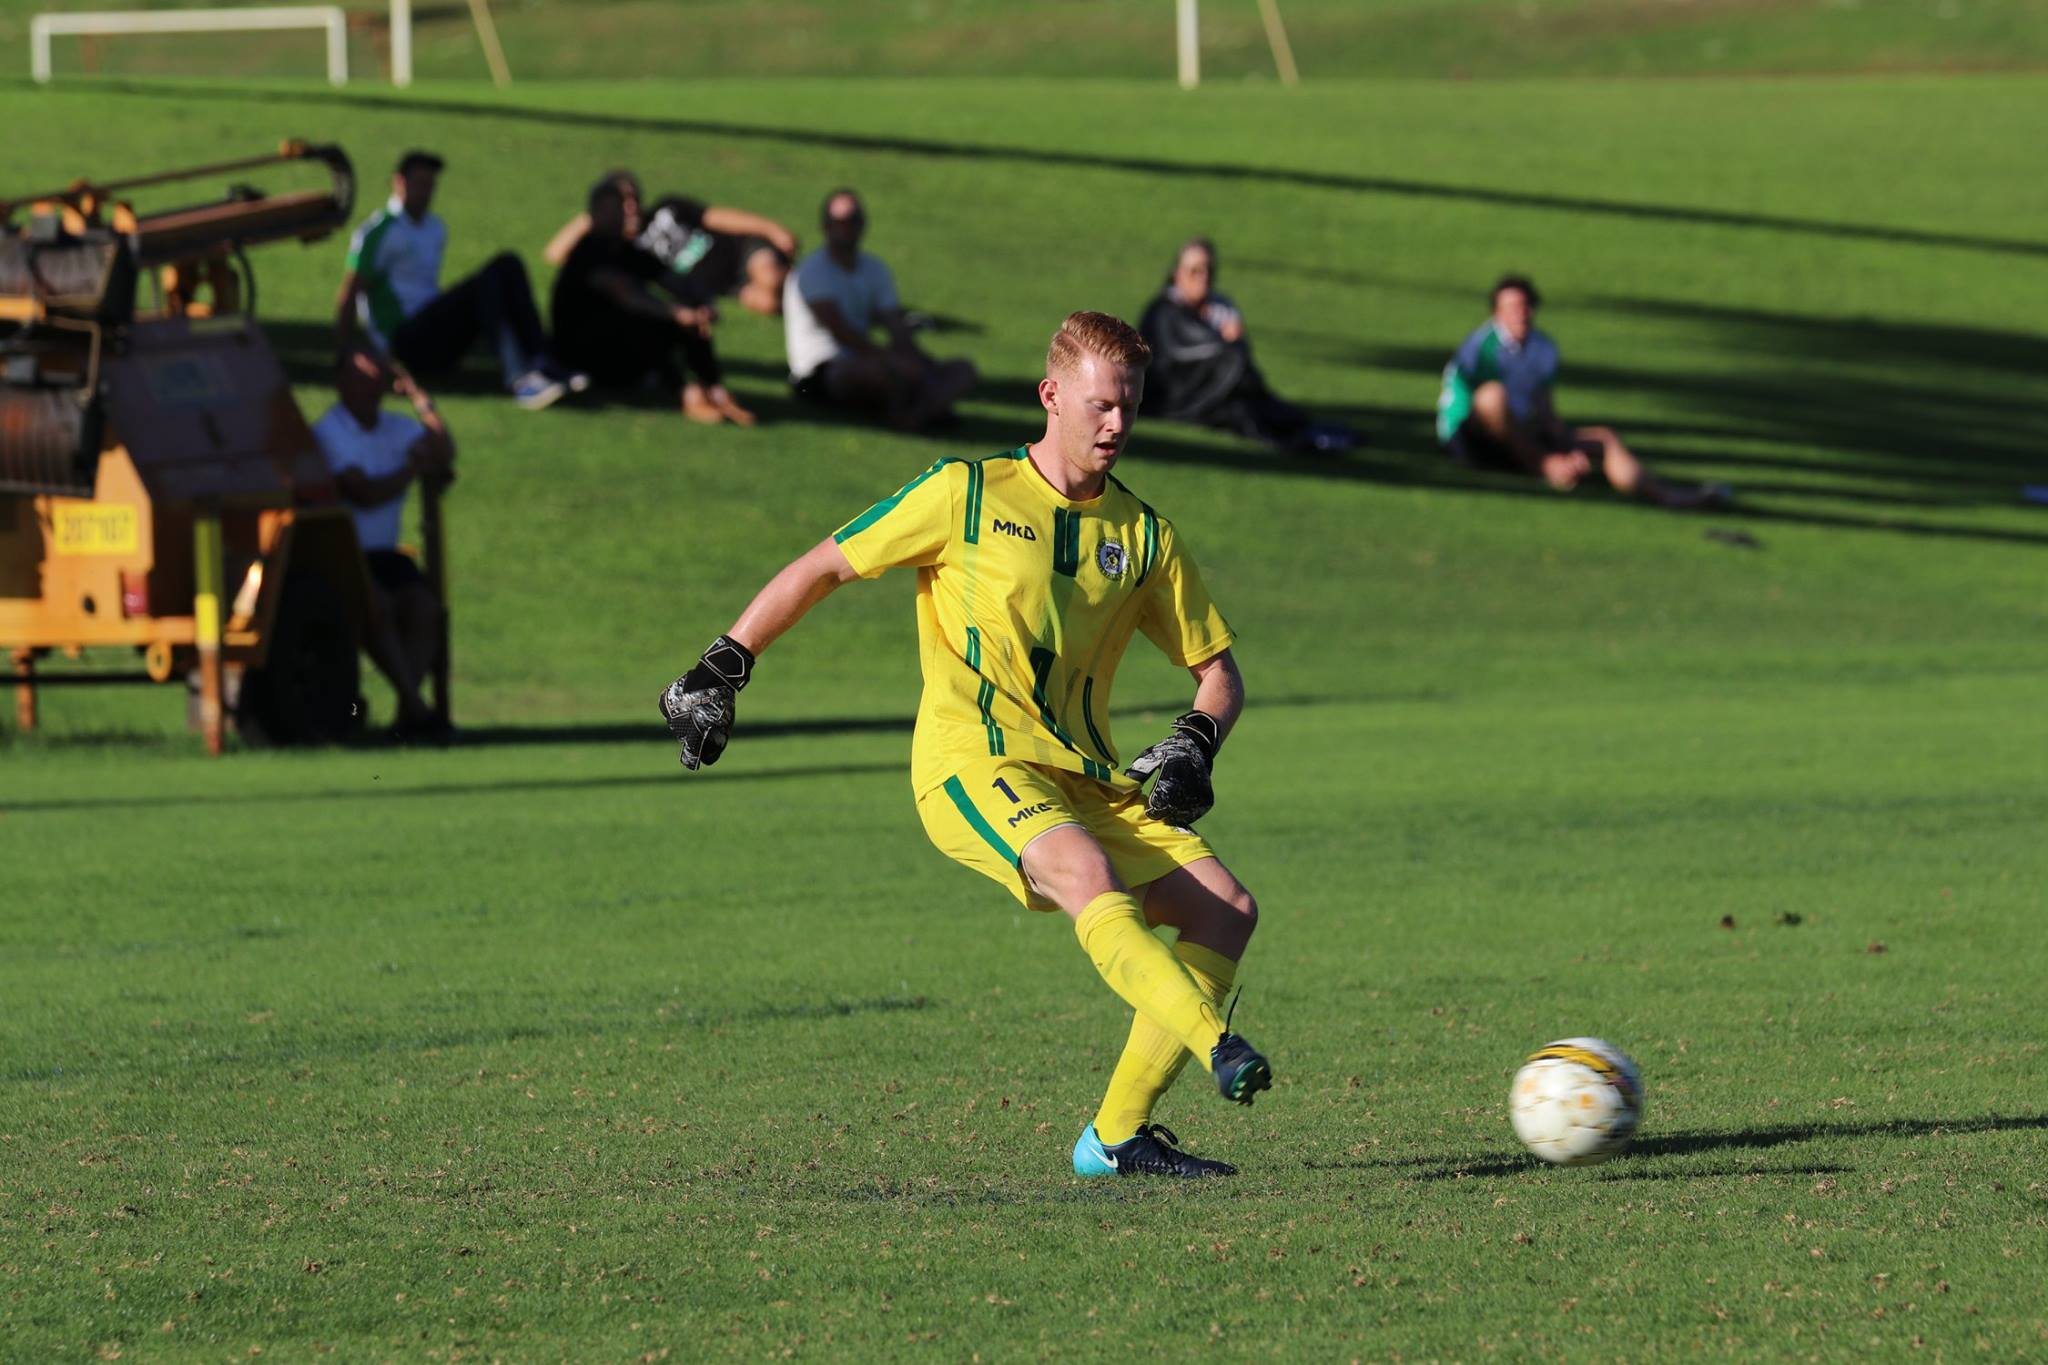 New UWA keeper Rhys Macfarlane was in fine form as his first clean sheet for the club.